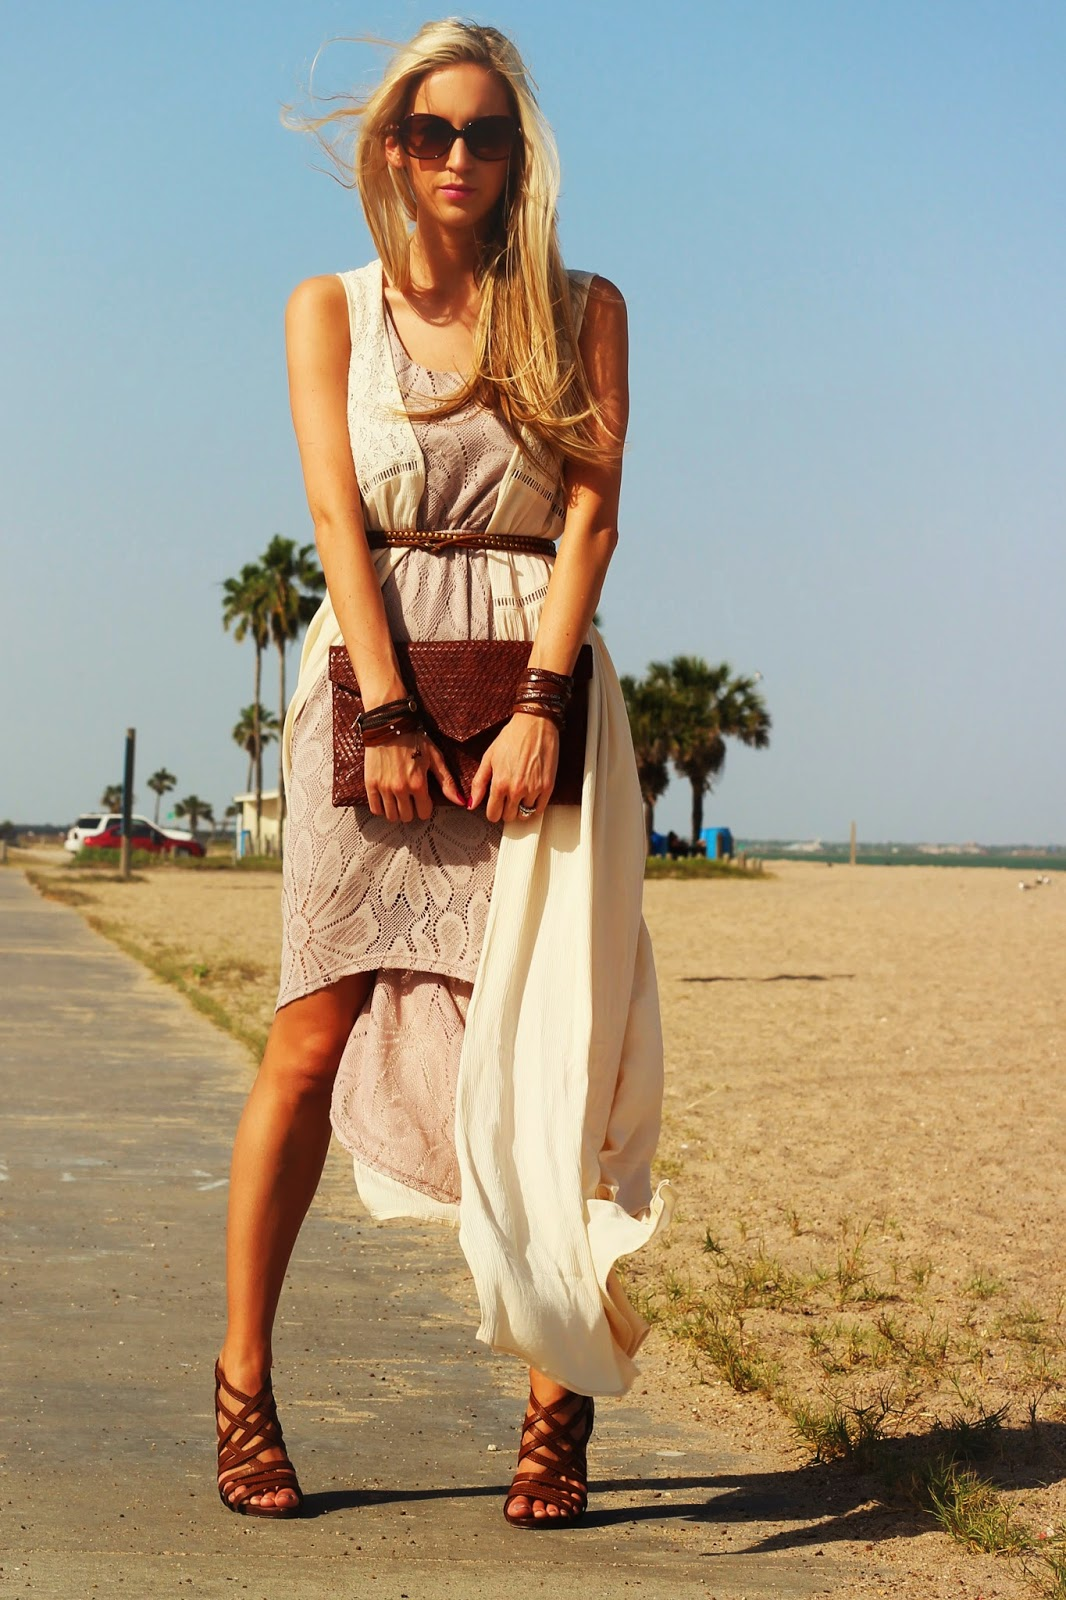 http://www.fabphilosophy.blogspot.com/2014/05/outfit-of-day-boho-on-beach.html